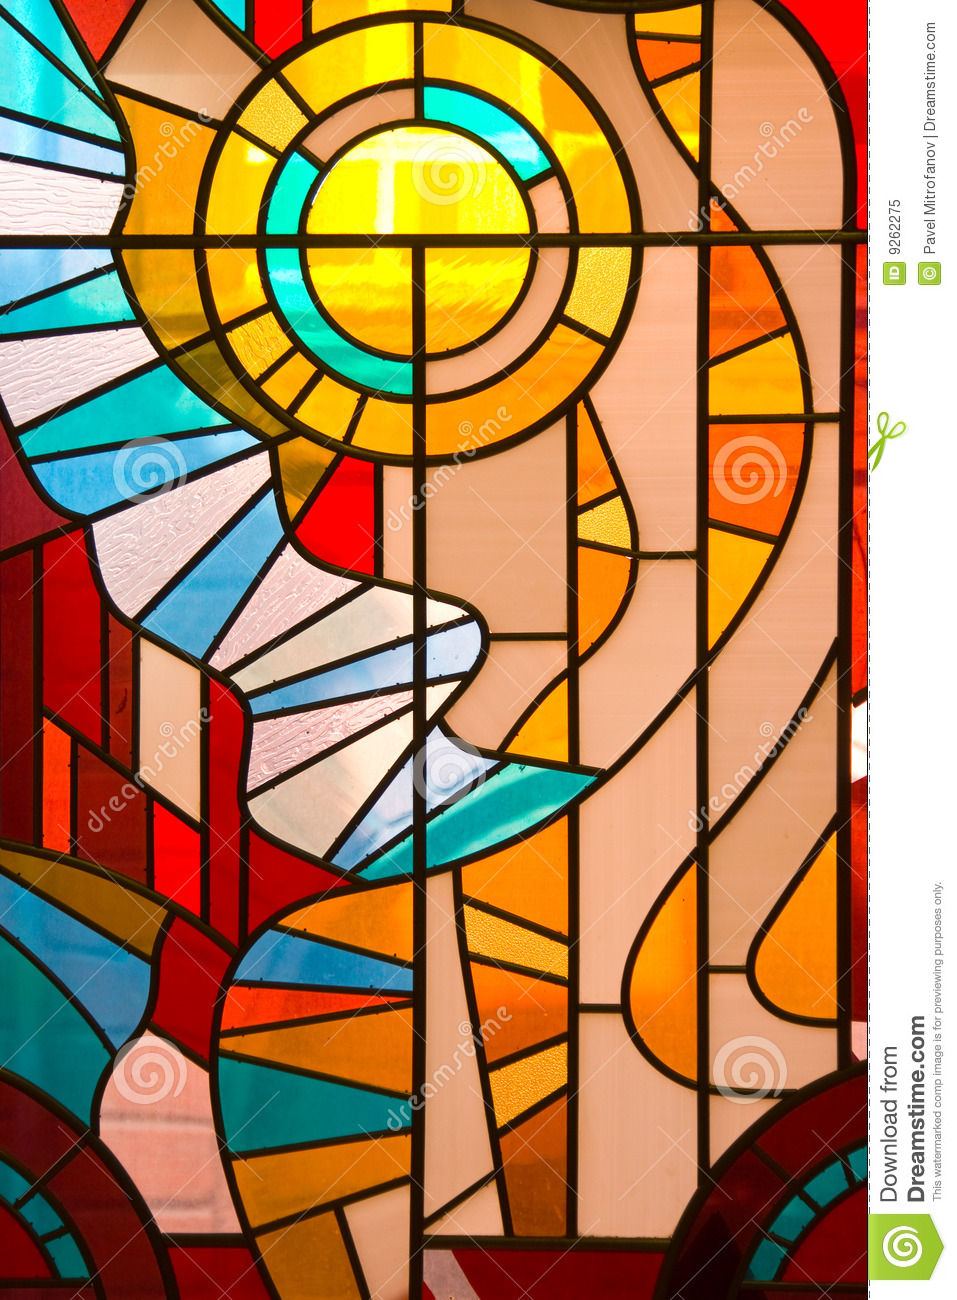 Glass Window Clip Art : Stained glass window royalty free stock photo image